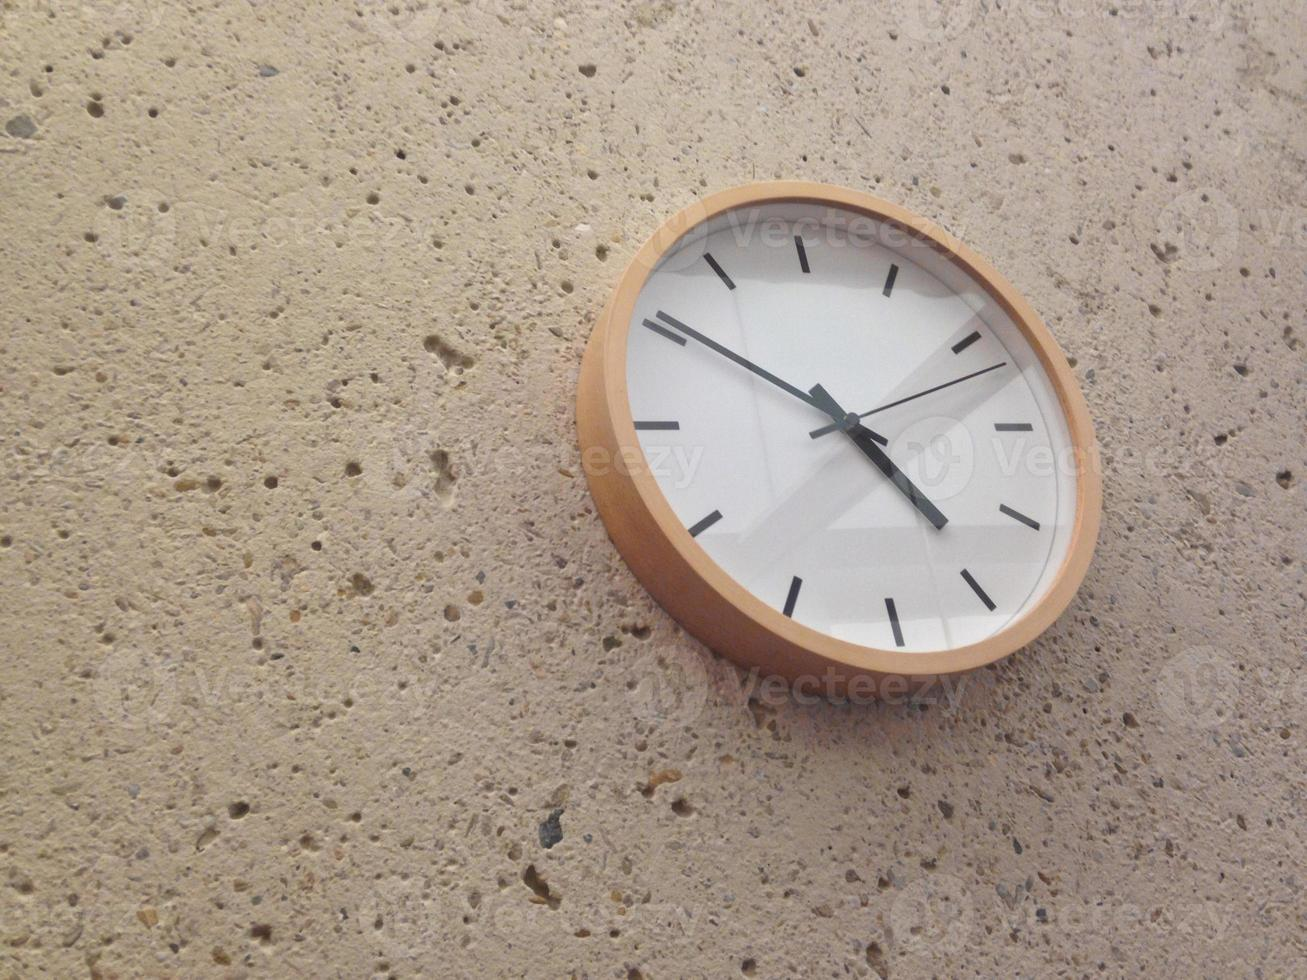 Simple classical analog wall clock photo